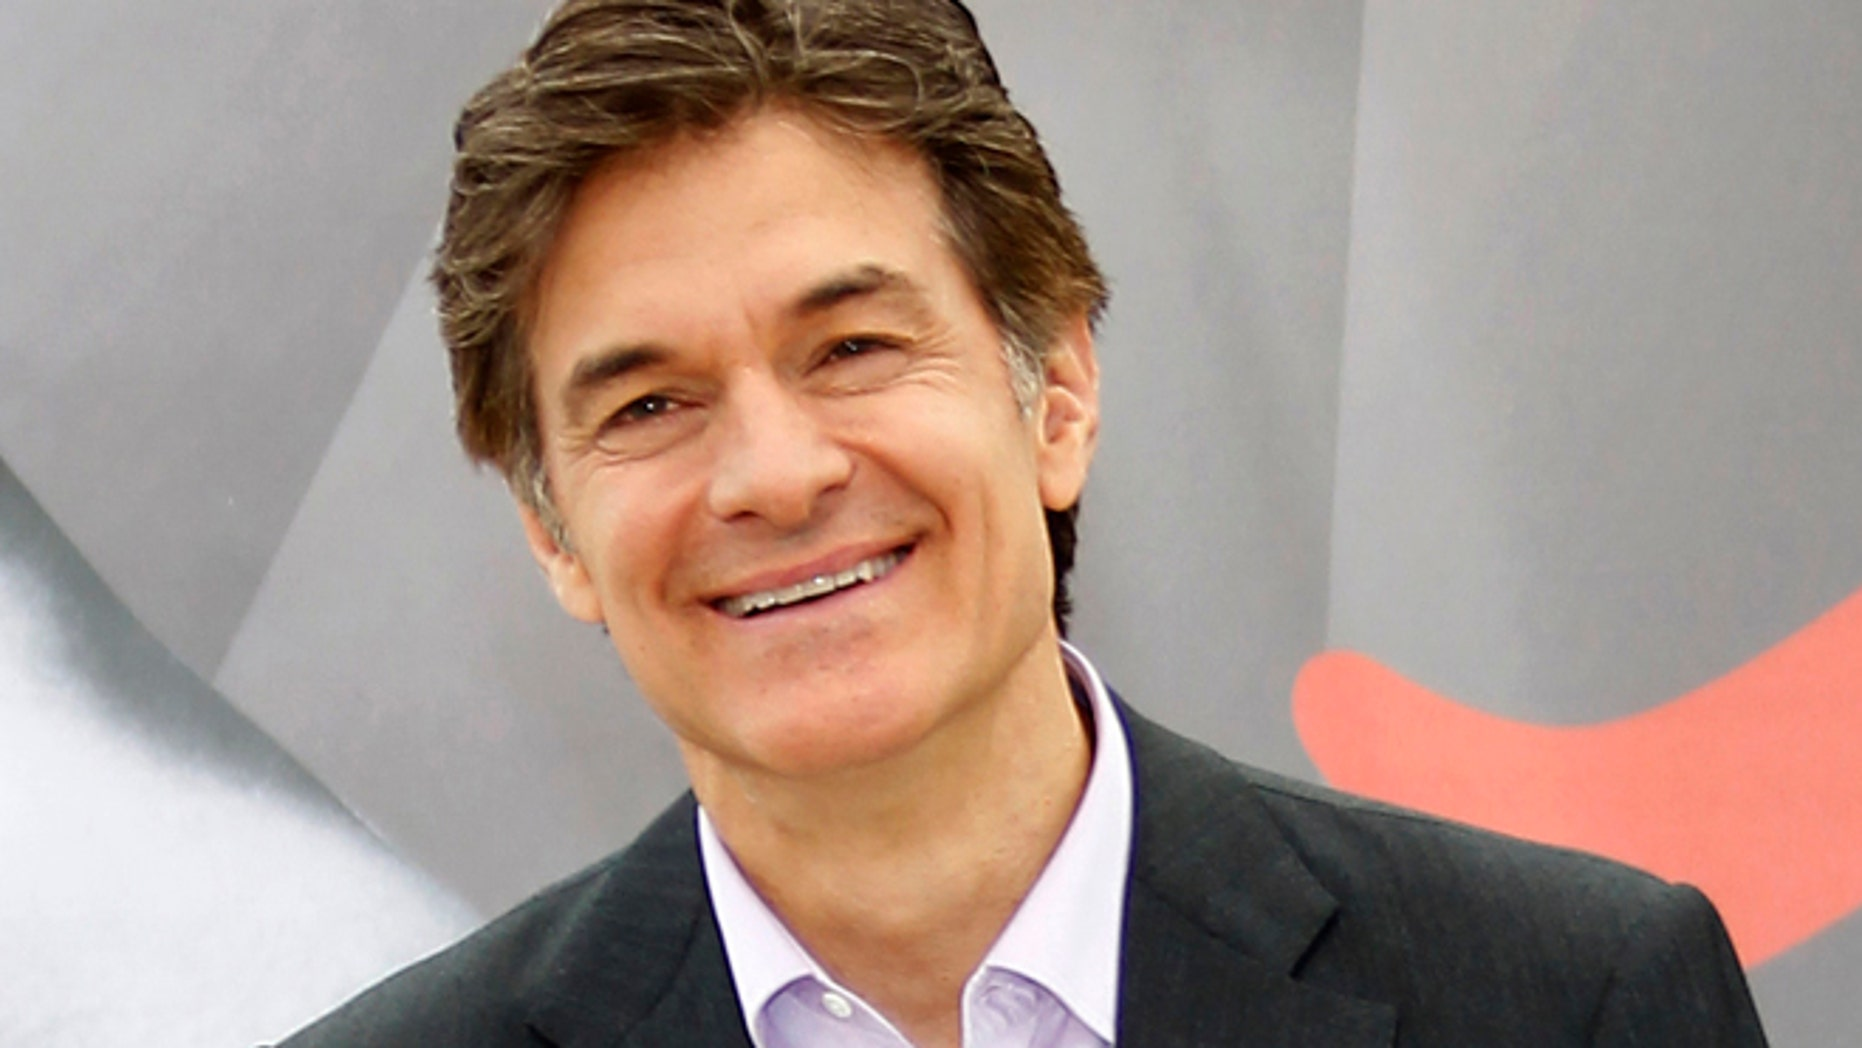 """Health expert Mehmet Oz poses during a photocall for the TV series """"The Dr Oz Show"""" at the 52nd Monte Carlo Television Festival in Monaco June 13, 2012.      REUTERS/Eric Gaillard (MONACO - Tags: ENTERTAINMENT HEALTH) - RTR33J6A"""